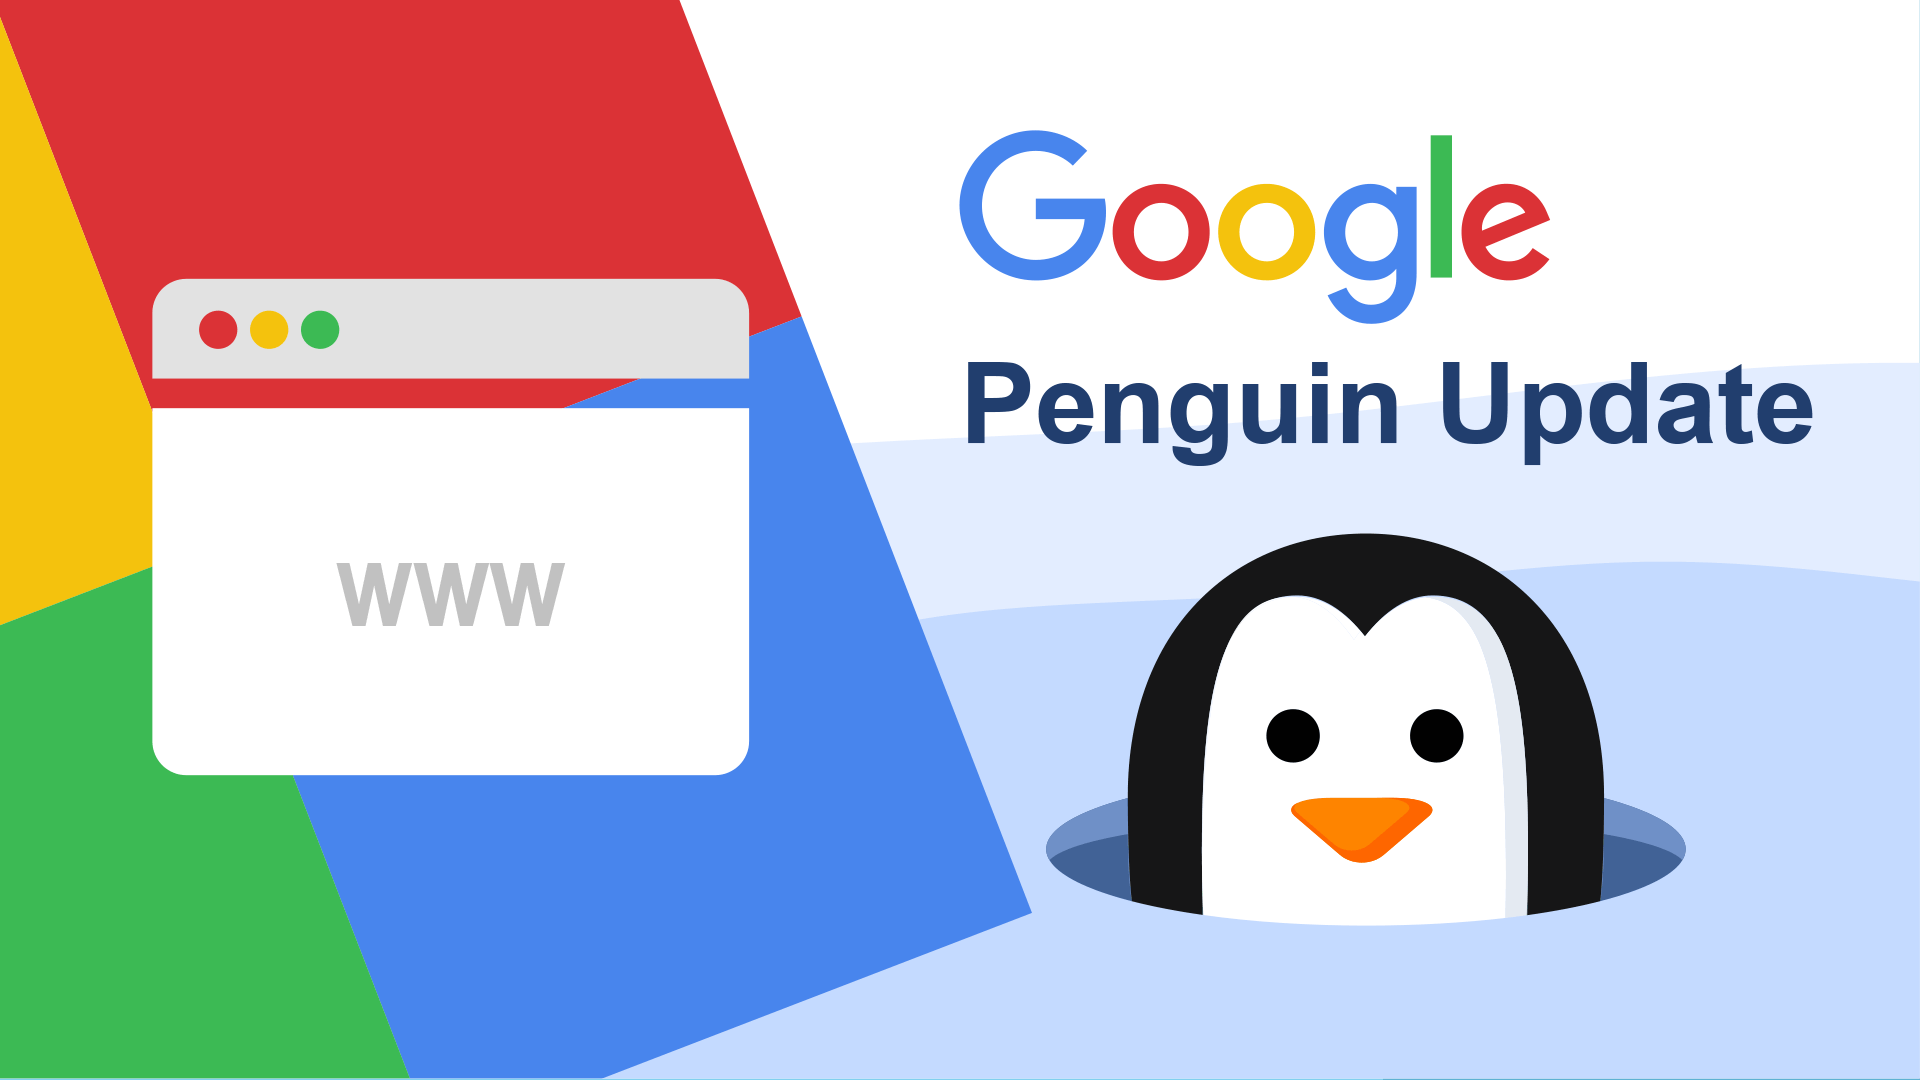 google-penguin-update-webcare4all-blog